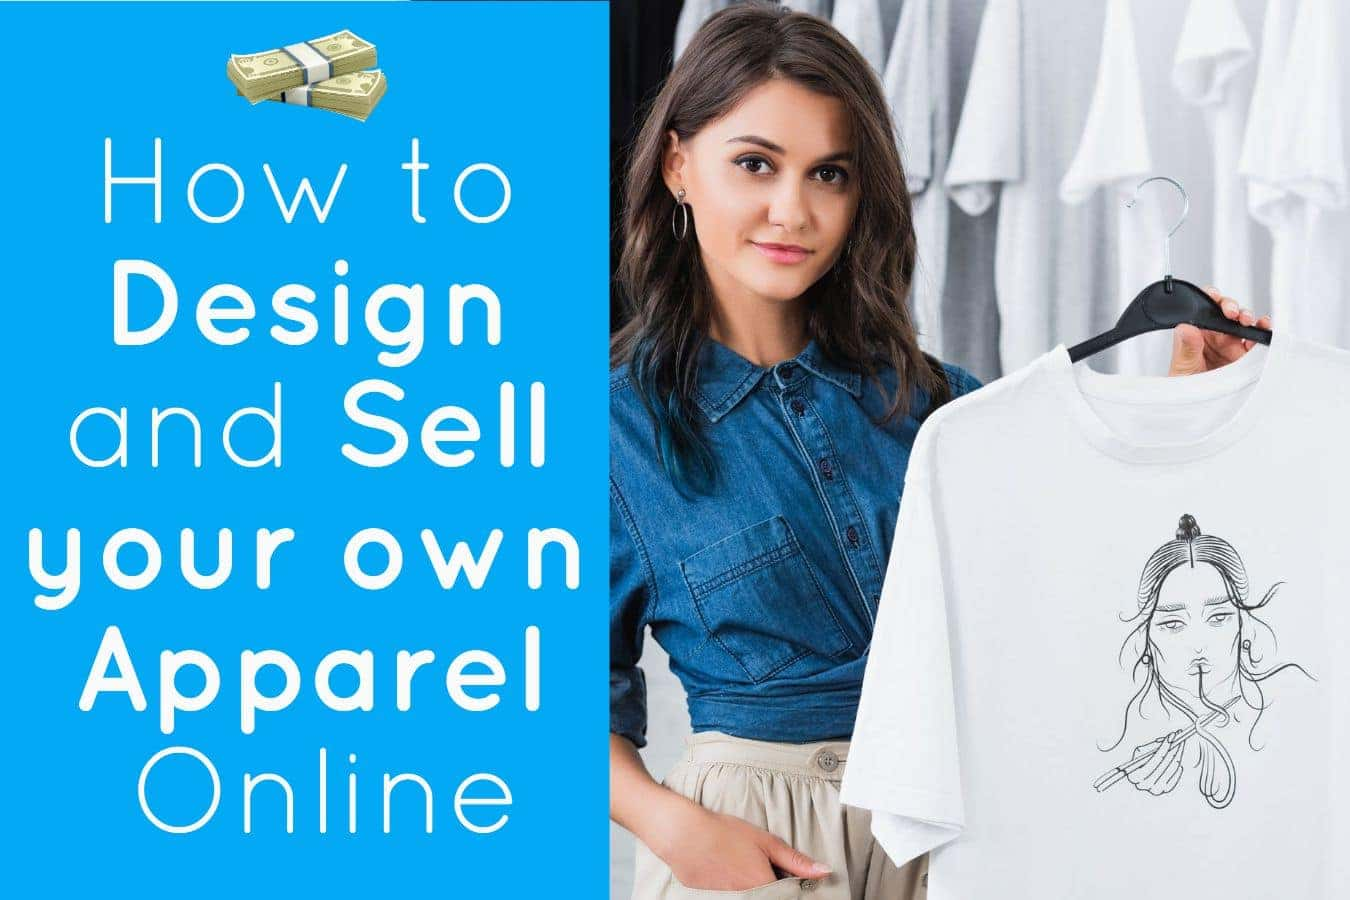 How to design and sell your own apparel online